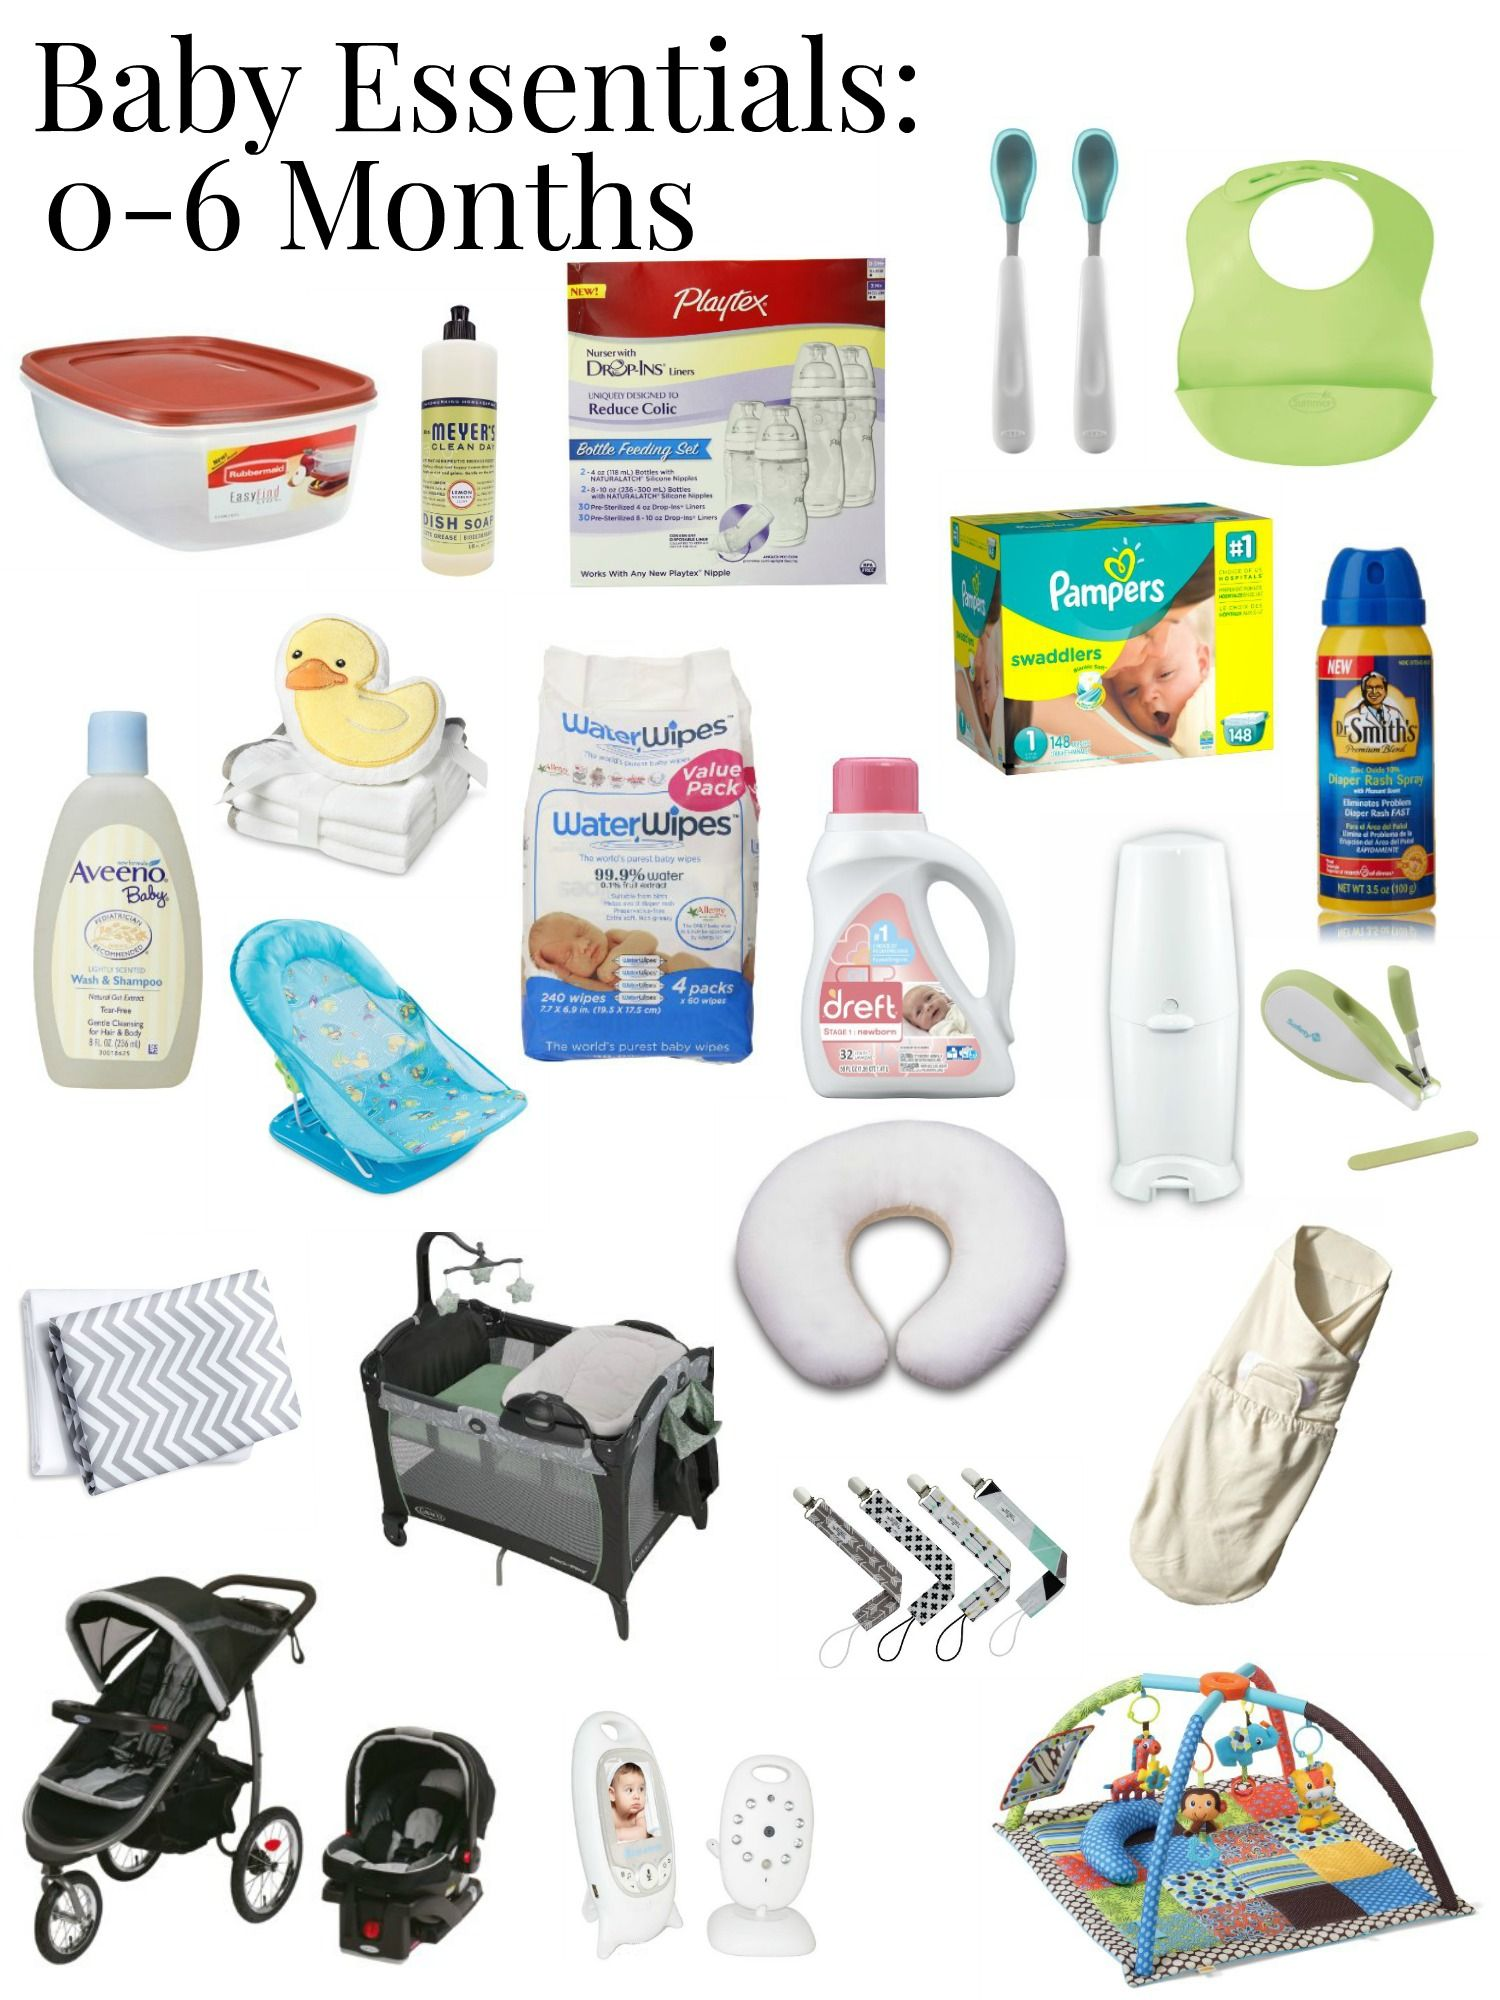 A Great List Of True Baby Essentials For The First  Months No